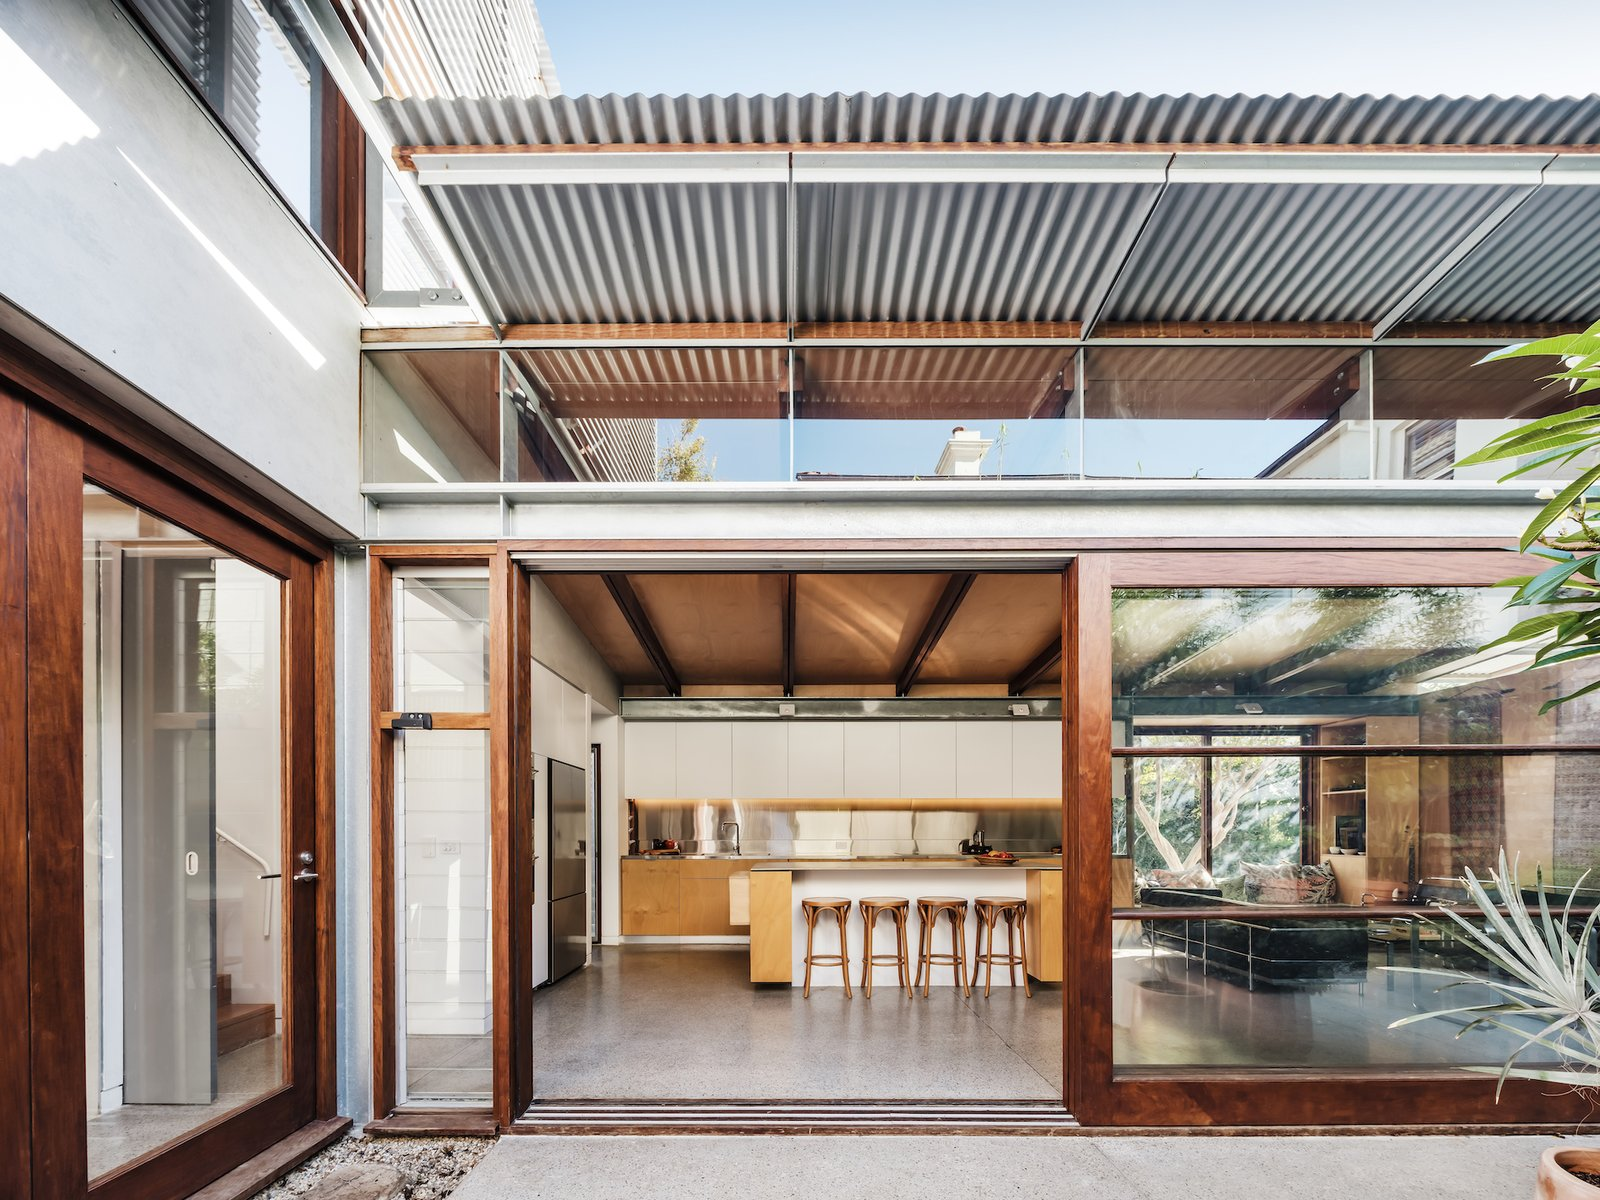 Kitchen of Courtyard House by COX.